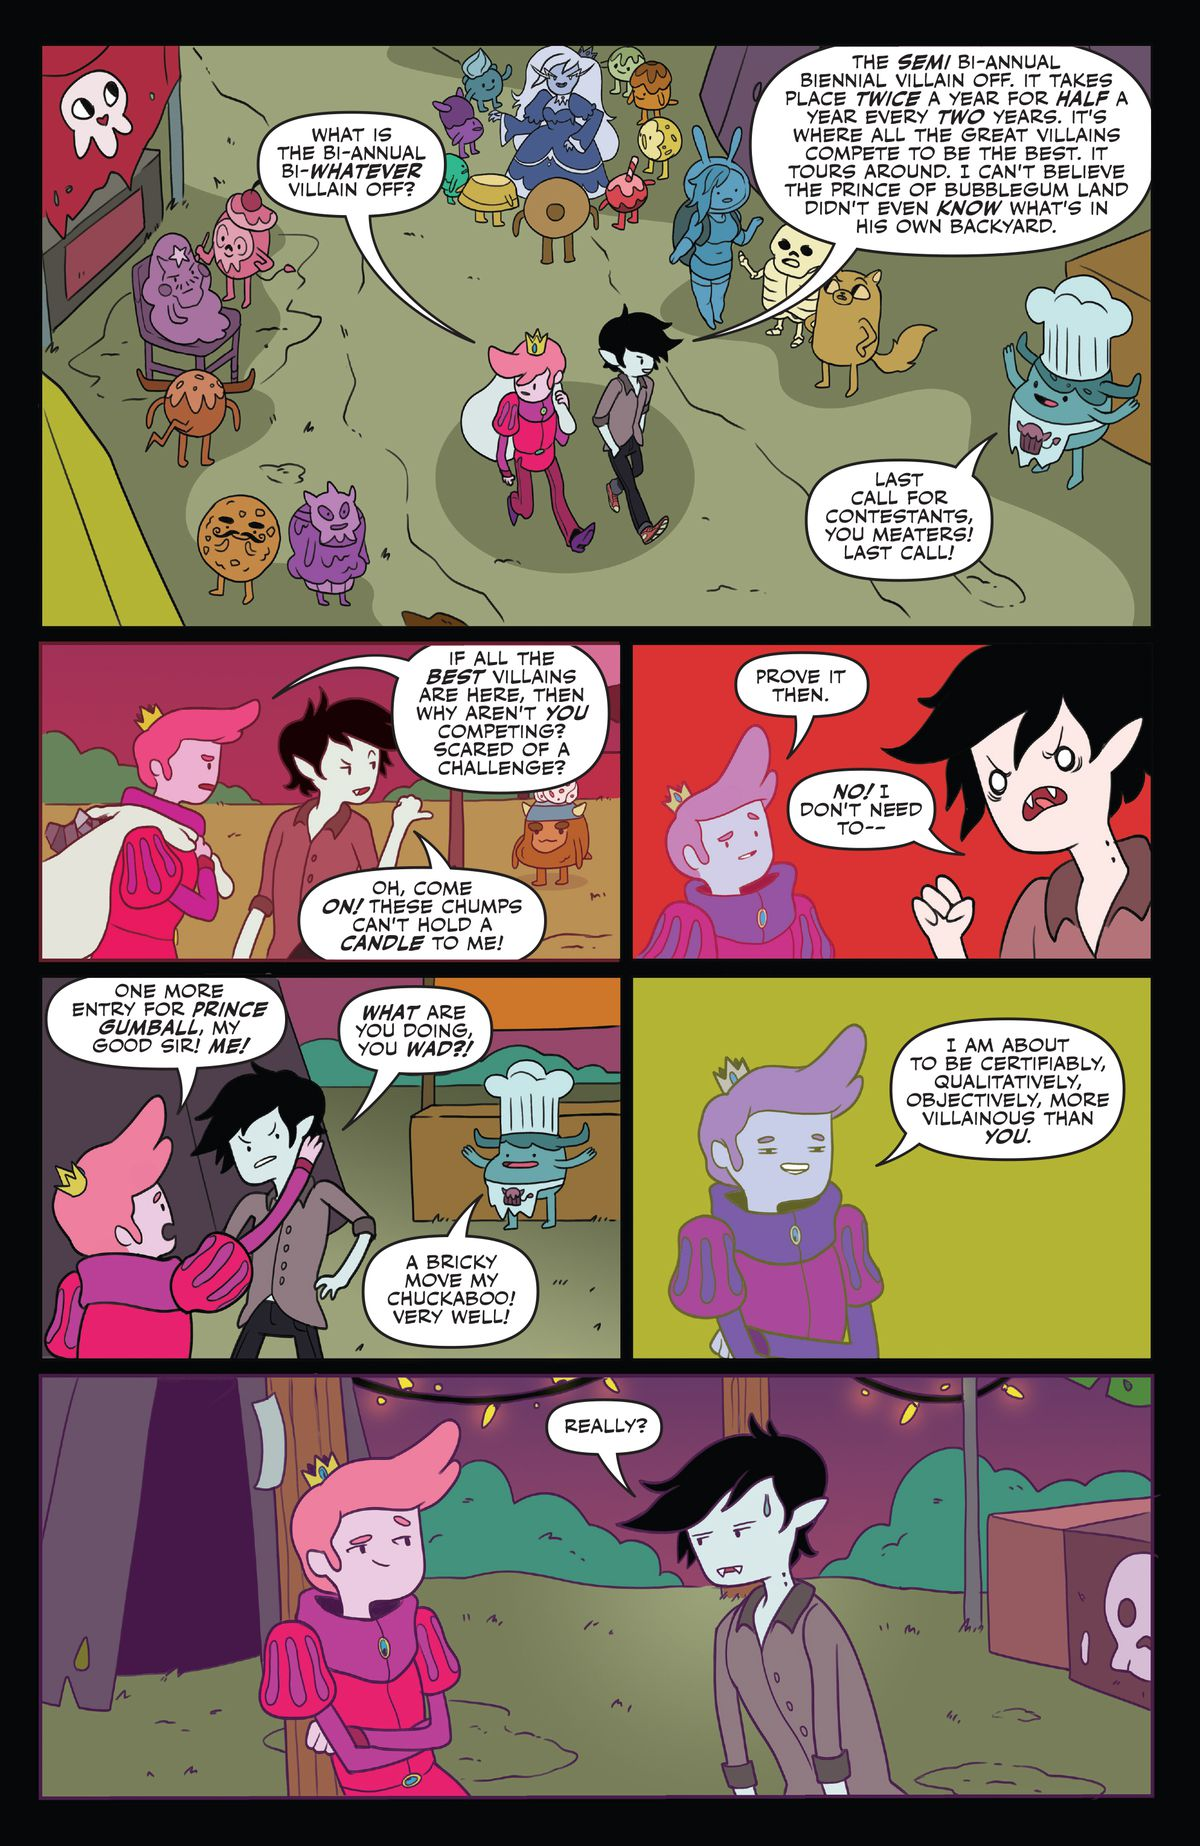 Prince Gumball finds out about the villain contest